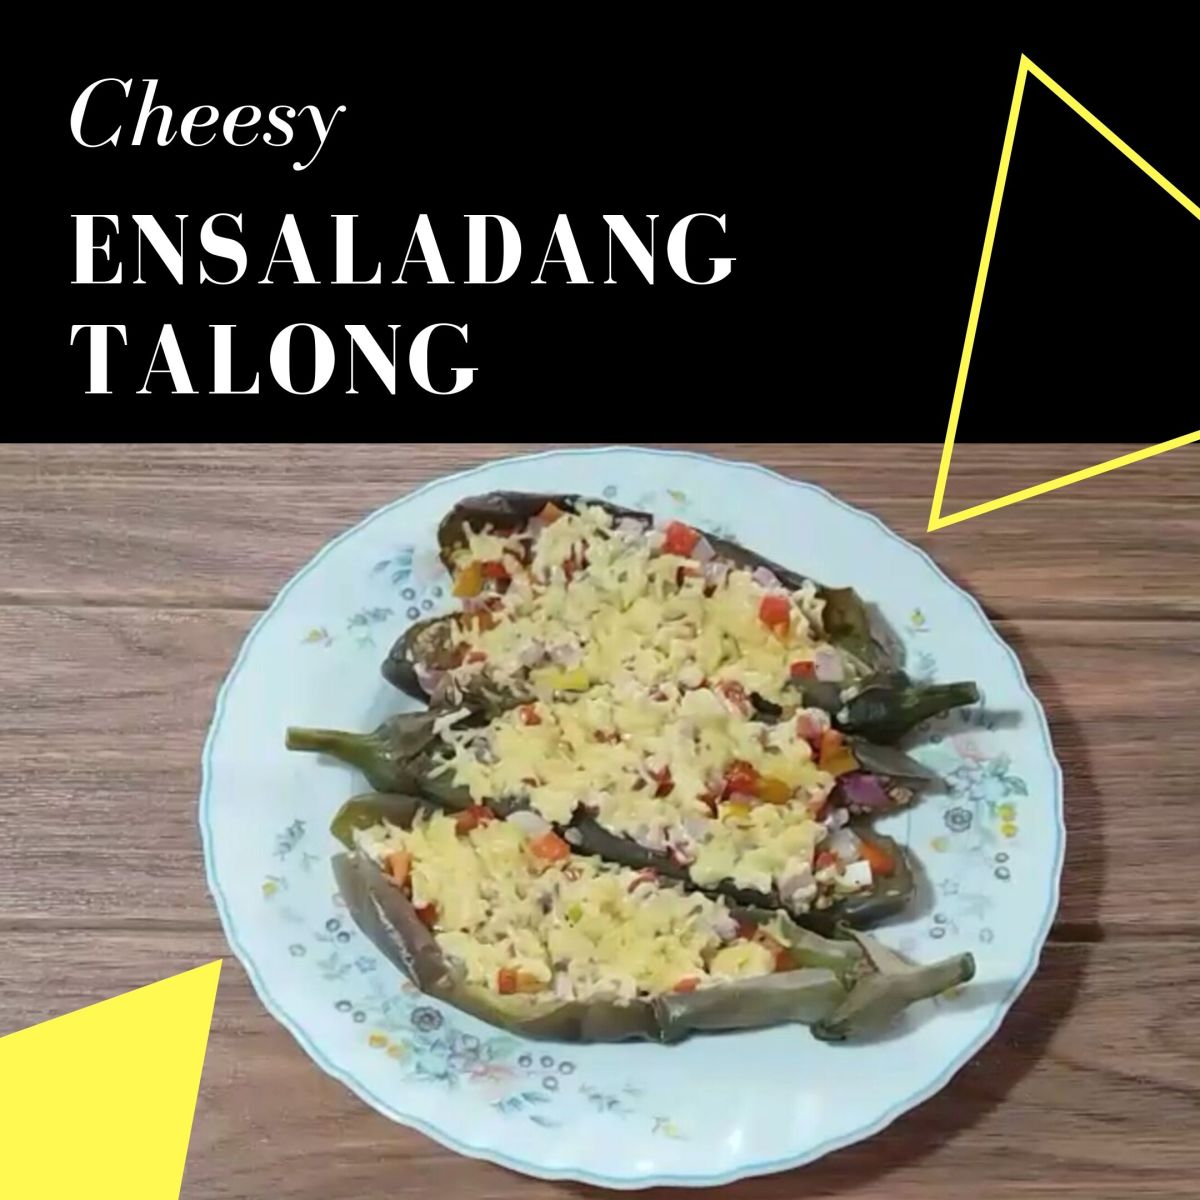 How to Cook Cheesy Ensaladang Talong (Eggplant Salad)